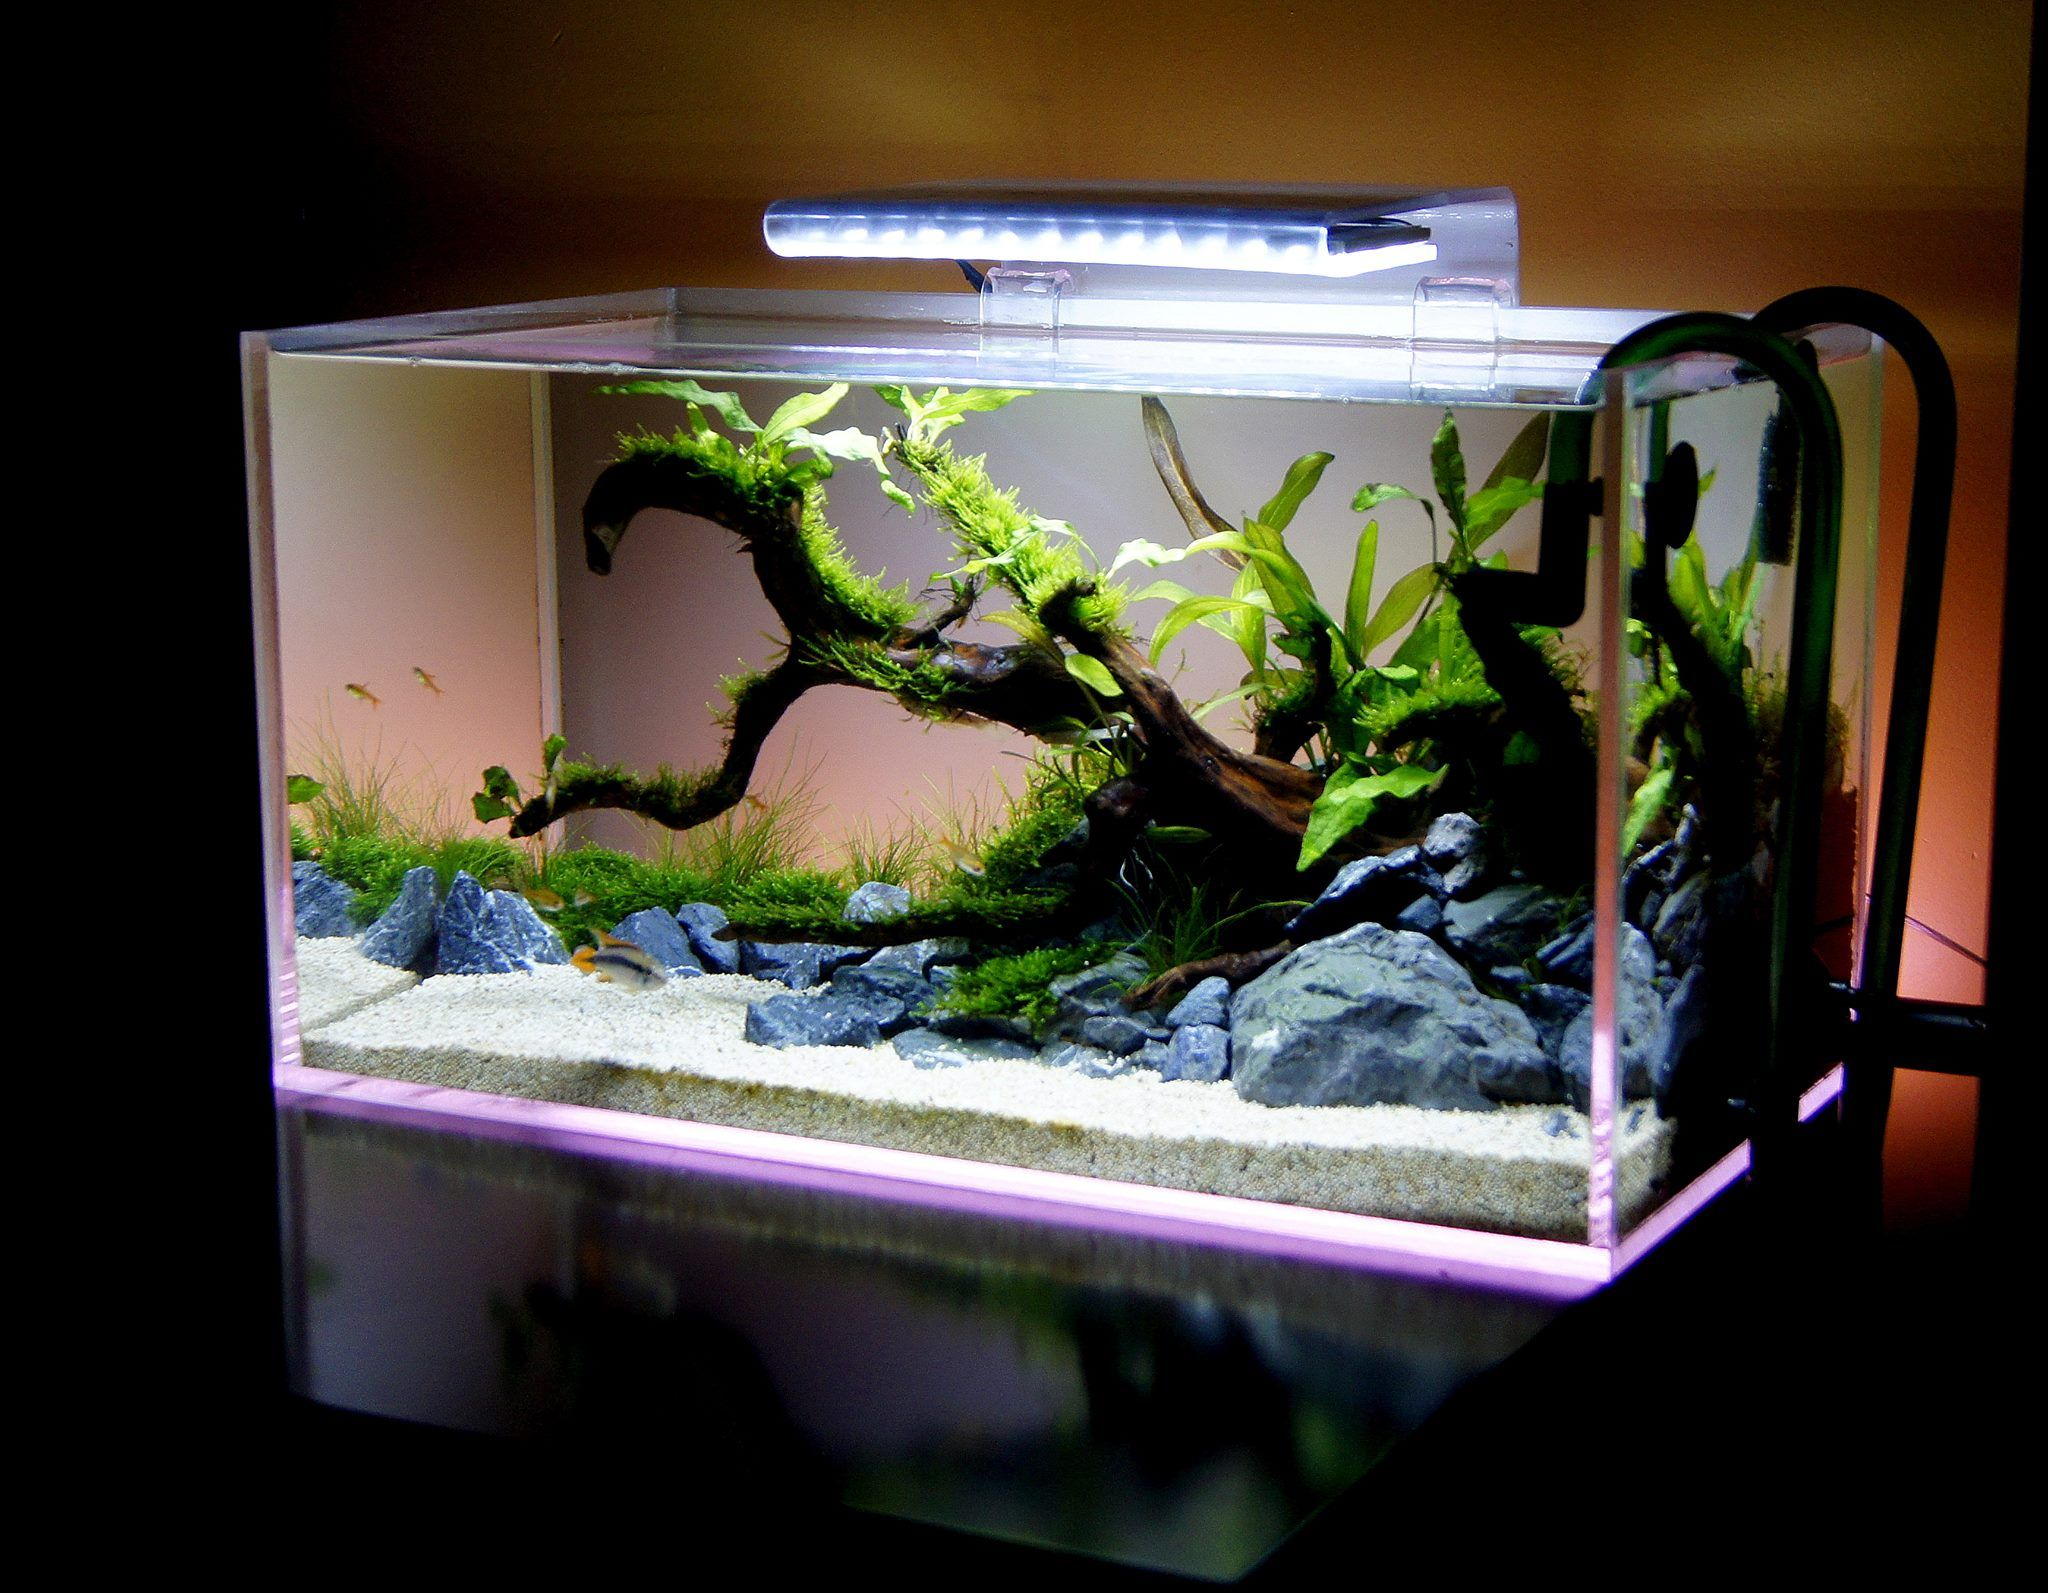 Fish aquariums for sale near me water world prism for Aquariums for sale near me